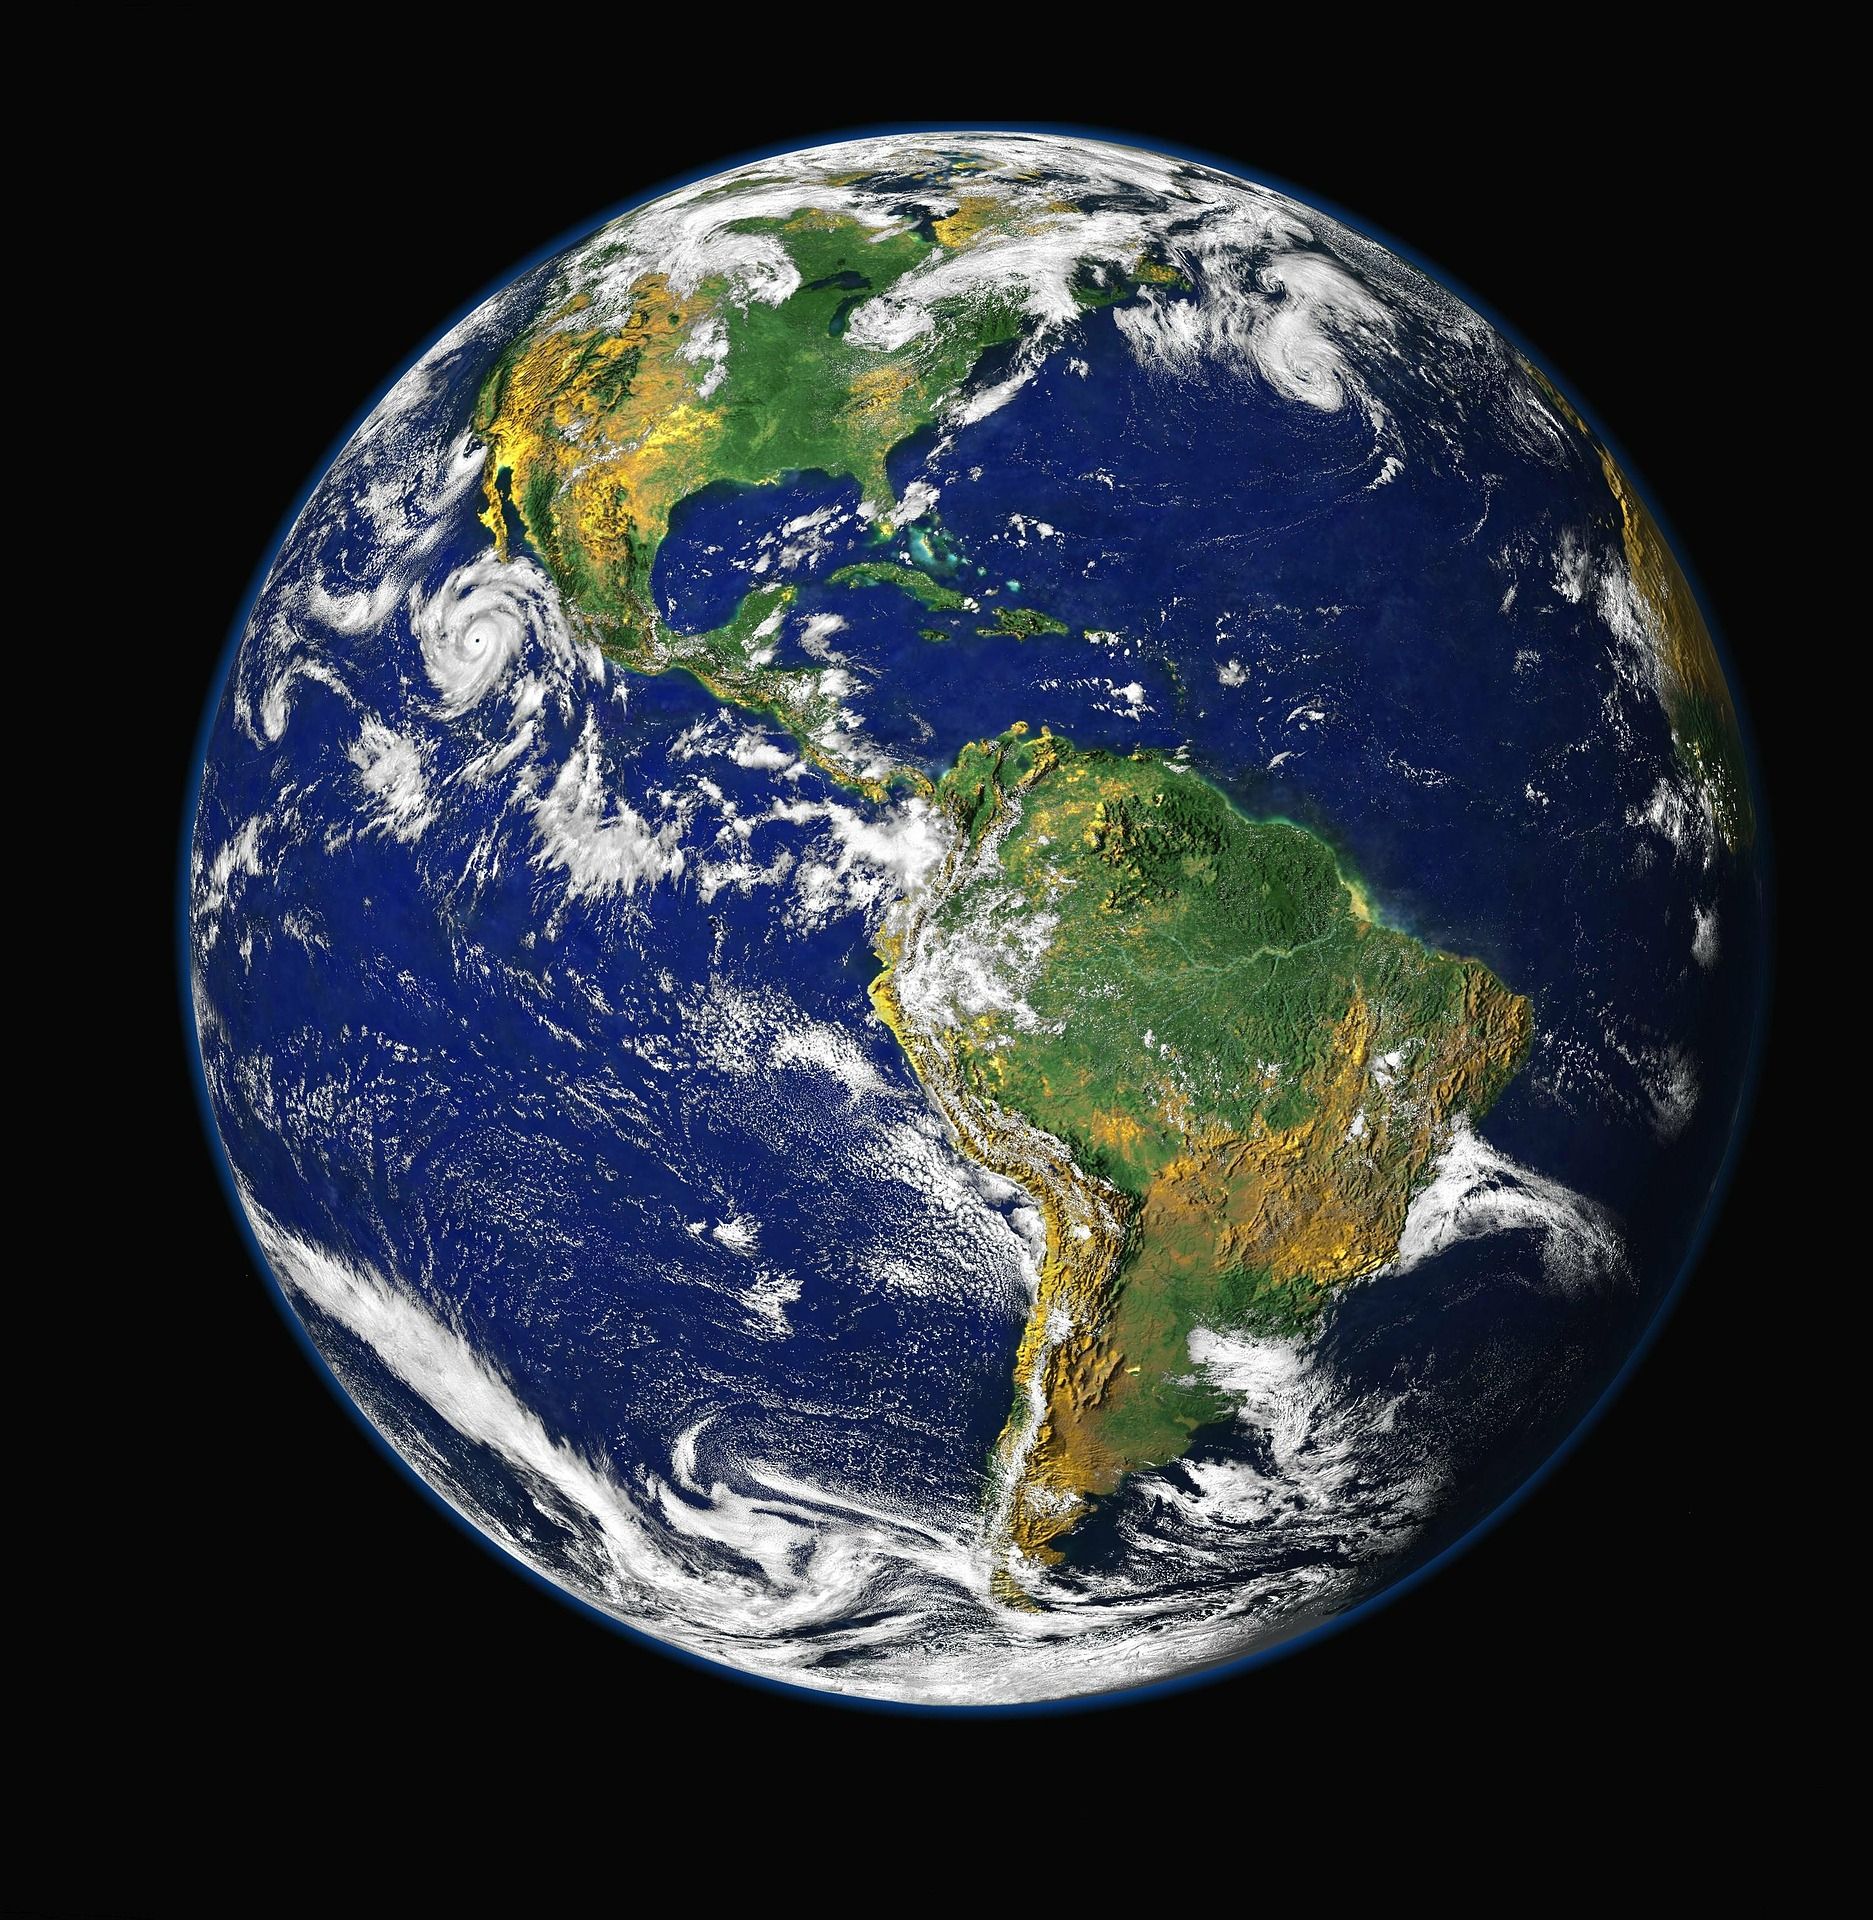 image of the earth western hemisphere the Blue Planet